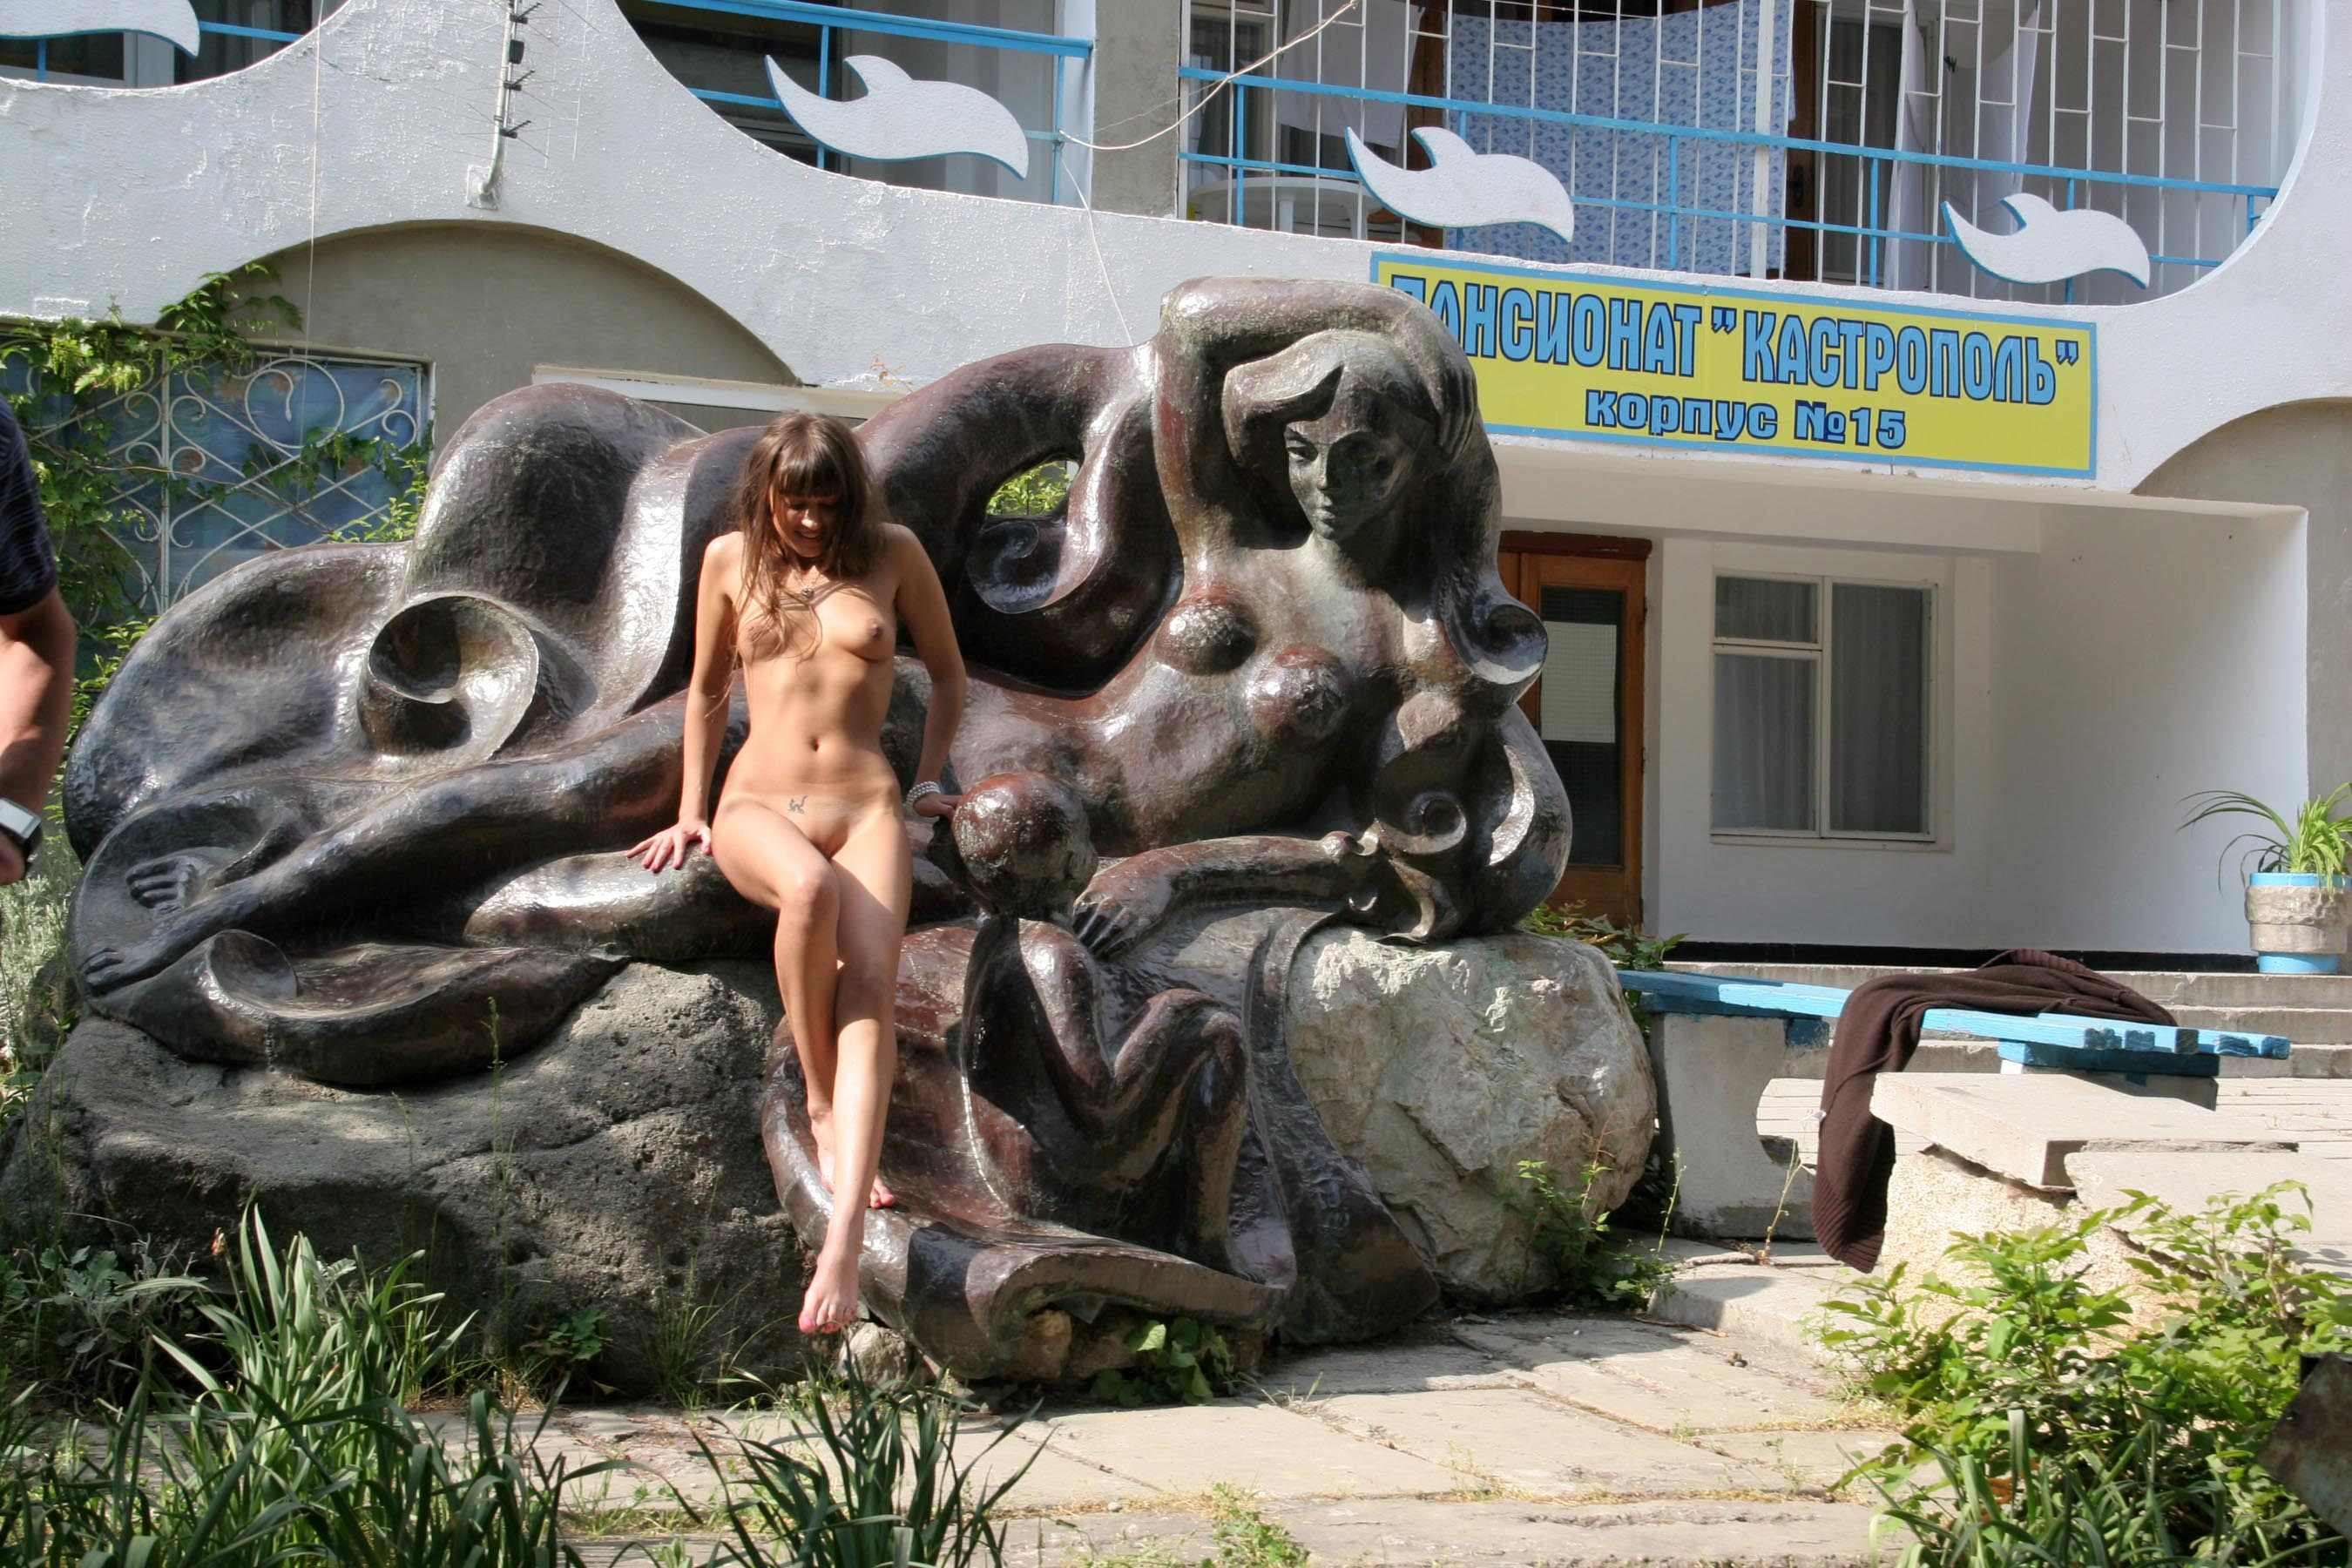 melena-crimean-holiday-public-nude-in-russia-23